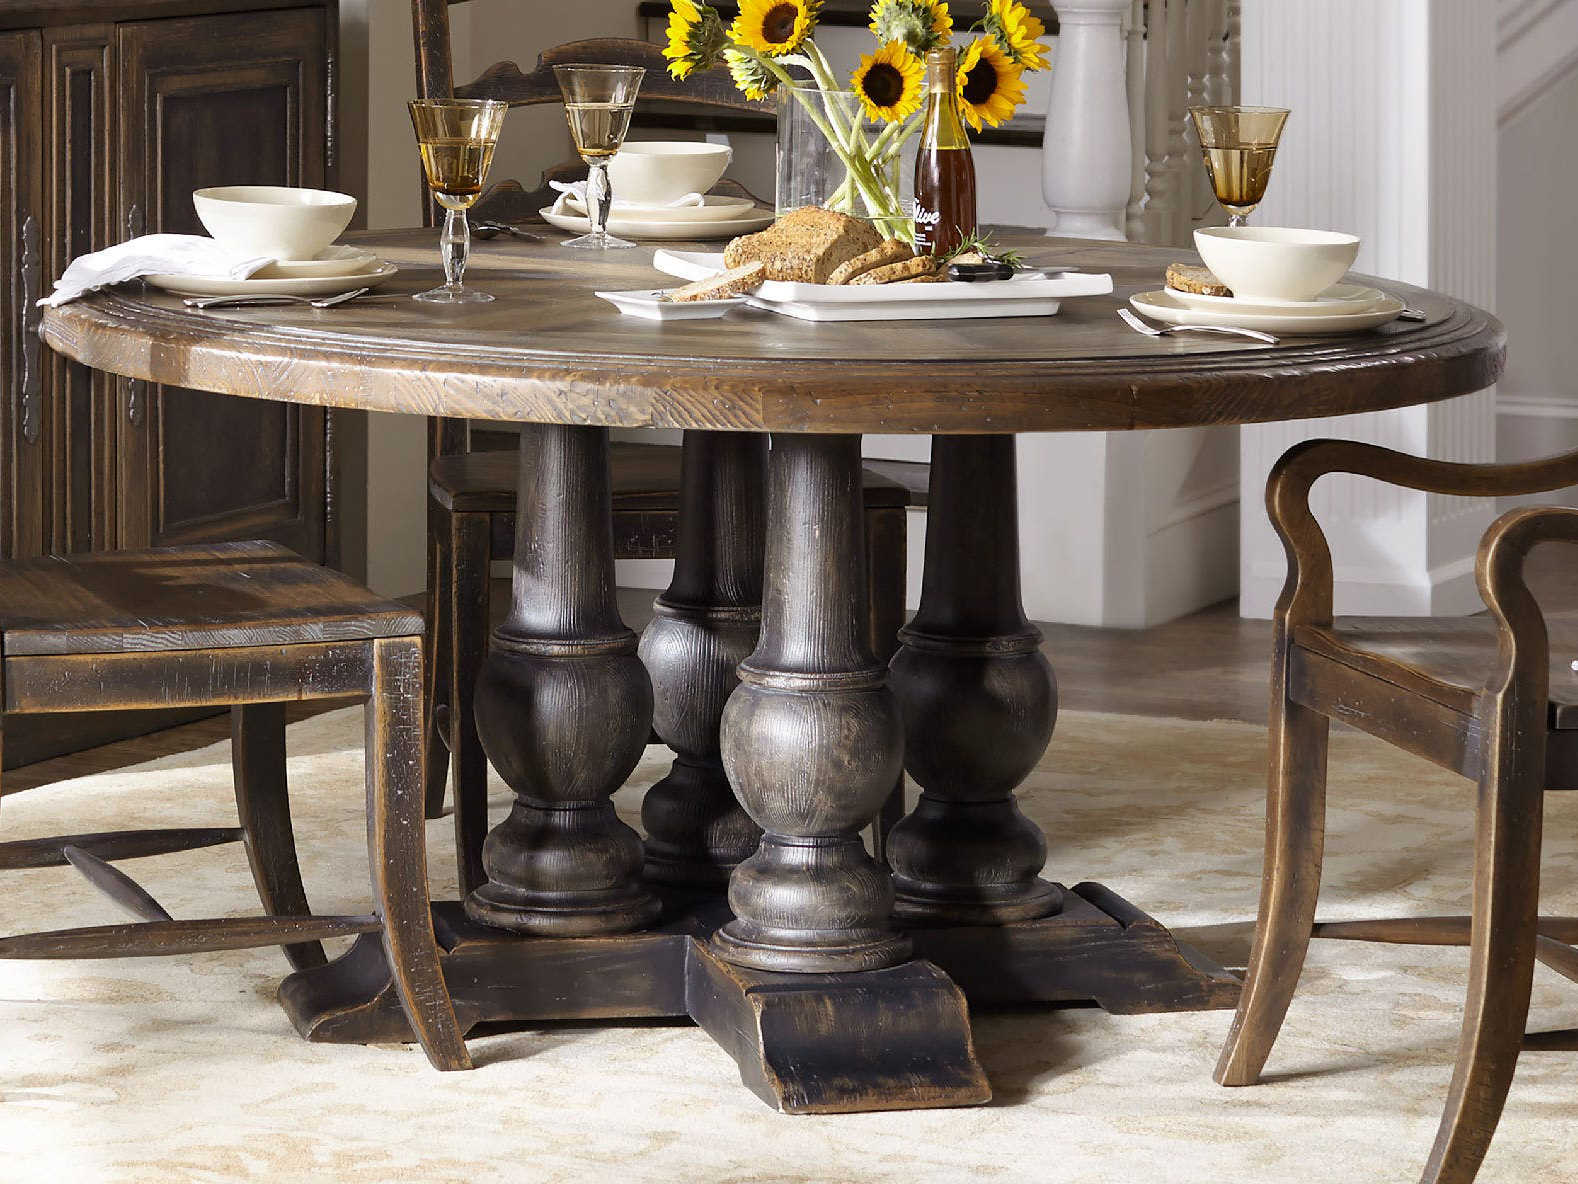 Hooker Furniture Hill Country Timeworn Saddle Brown Anthracite Black 60 Wide Round Applewhite Dining Table Hoo596075203brn